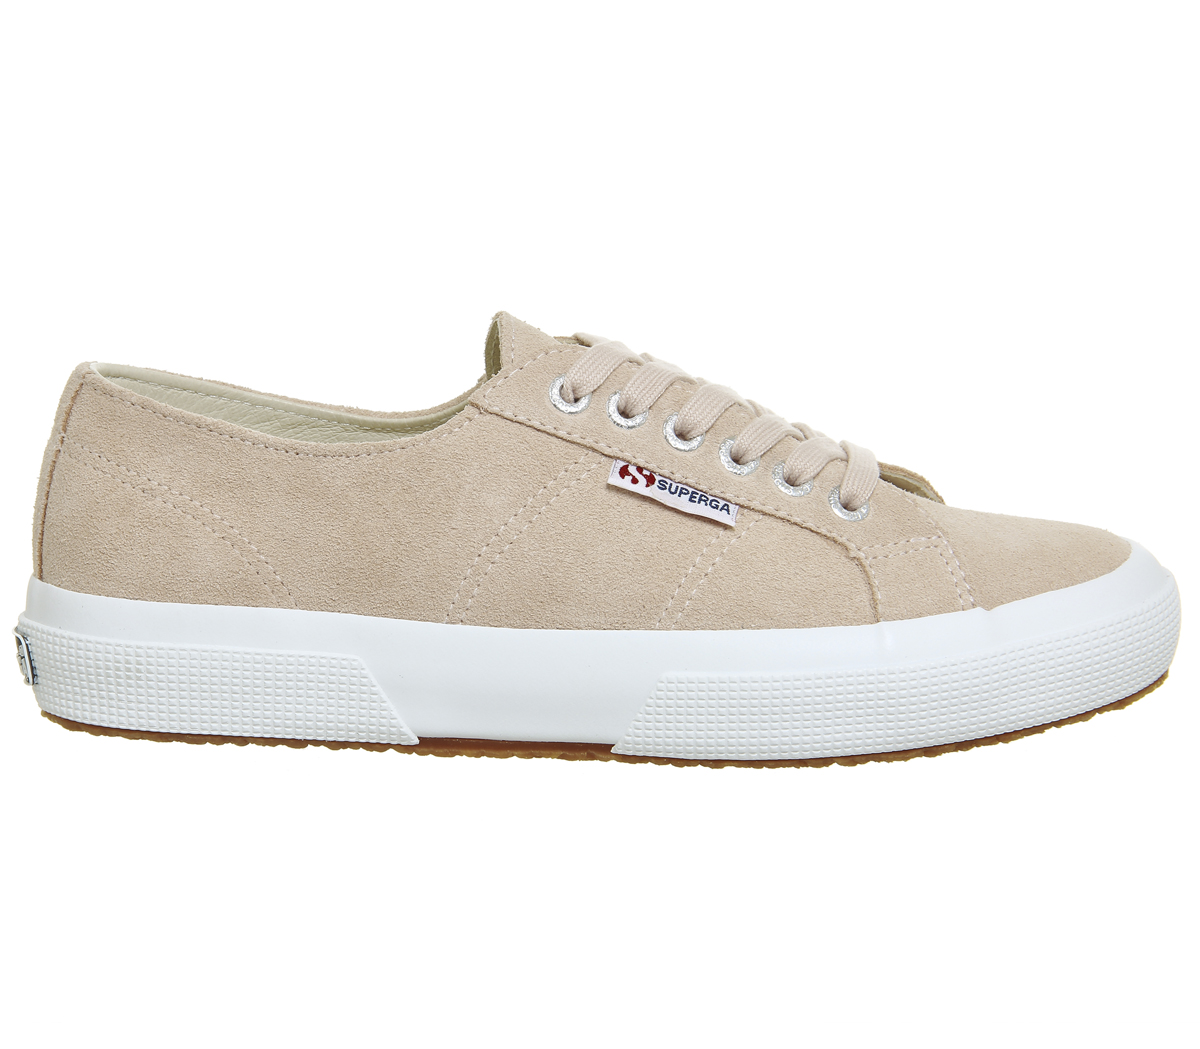 a895eb831b3 Sentinel Womens Superga 2750 Trainers Pink Skin Suede Trainers Shoes